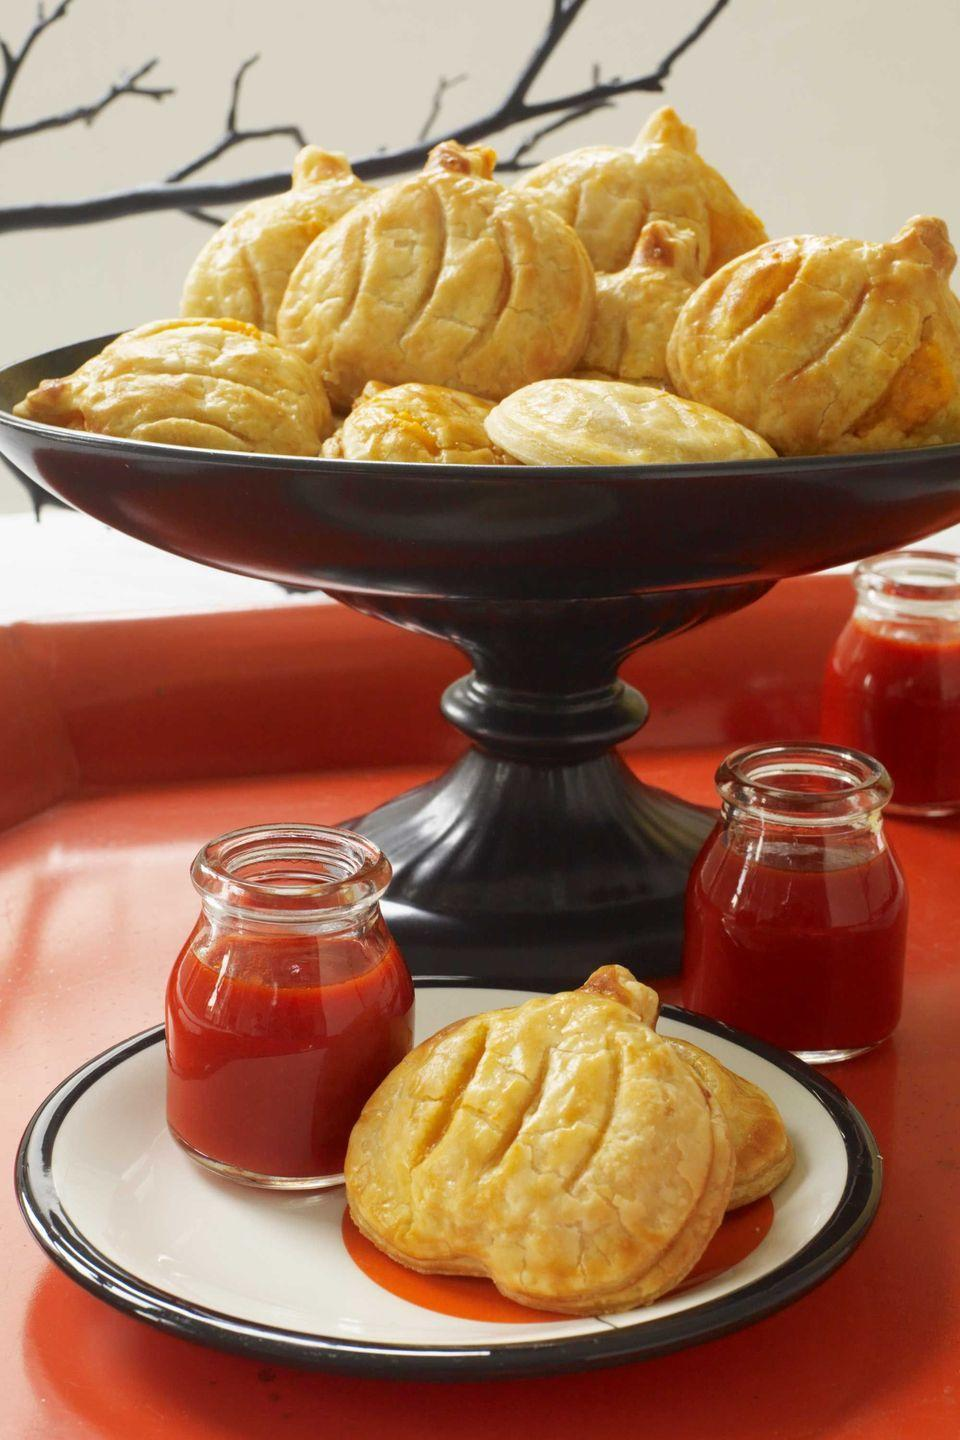 """<p>These snacks are ideal for any autumn-themed gathering, as they don't take much effort to make, so you can get them on the table in a flash.</p><p><strong><em><a href=""""https://www.womansday.com/food-recipes/food-drinks/recipes/a10925/pumpkin-patch-bites-recipe-122164/"""" rel=""""nofollow noopener"""" target=""""_blank"""" data-ylk=""""slk:Get the Pumpkin Patch Bites recipe."""" class=""""link rapid-noclick-resp"""">Get the Pumpkin Patch Bites recipe. </a></em></strong> </p>"""